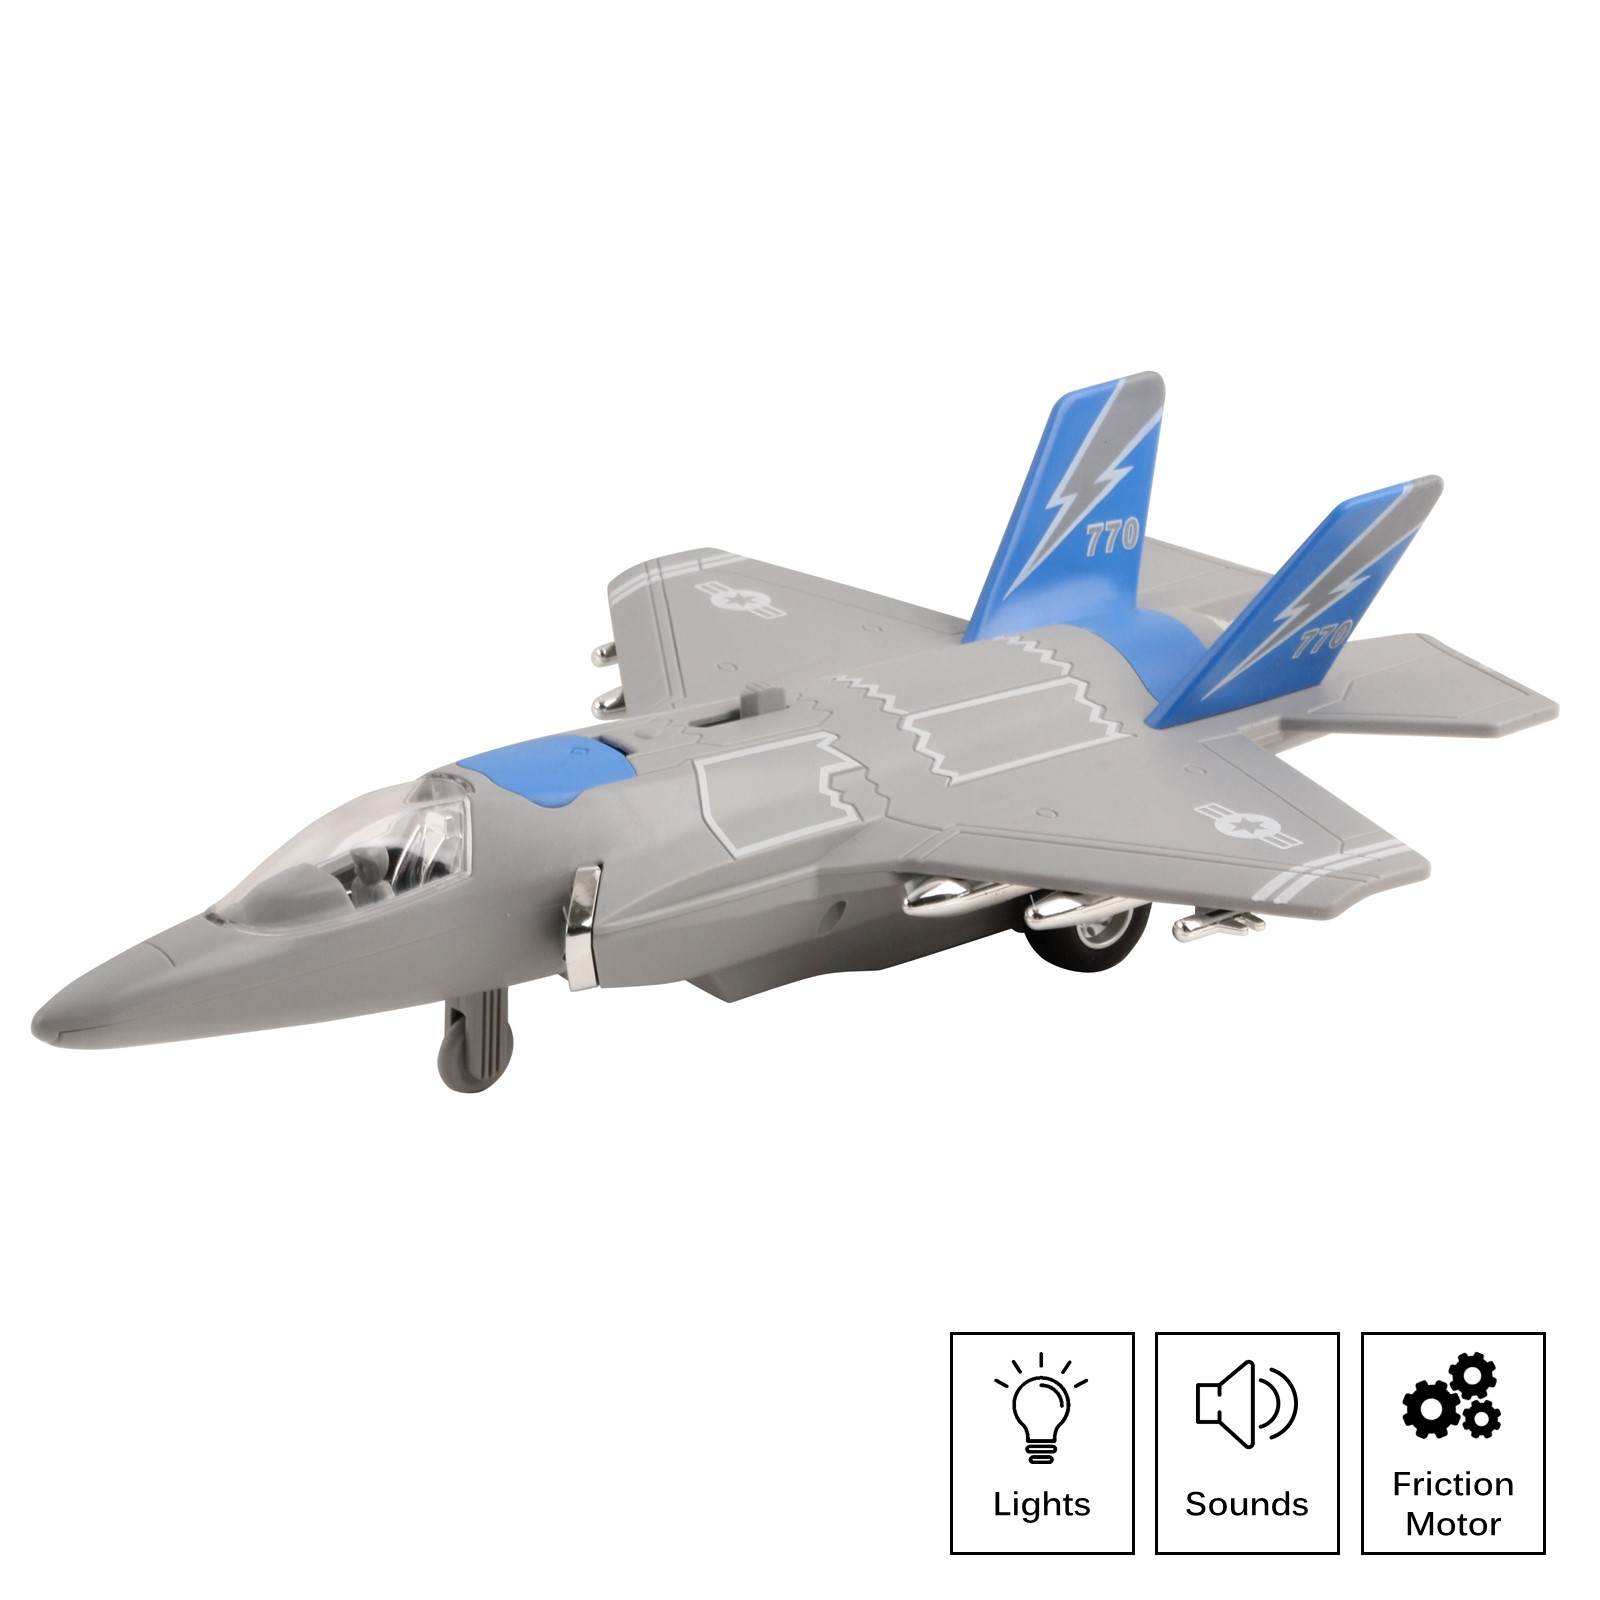 Army Air Force Fighter Jet F-22 Toy Military Airplane Friction Powered 1:16 Scale With Fun Lights And Sounds Pretend Play Quality Kids Action Bomber Aircraft Great Gift For Children Boys Girls